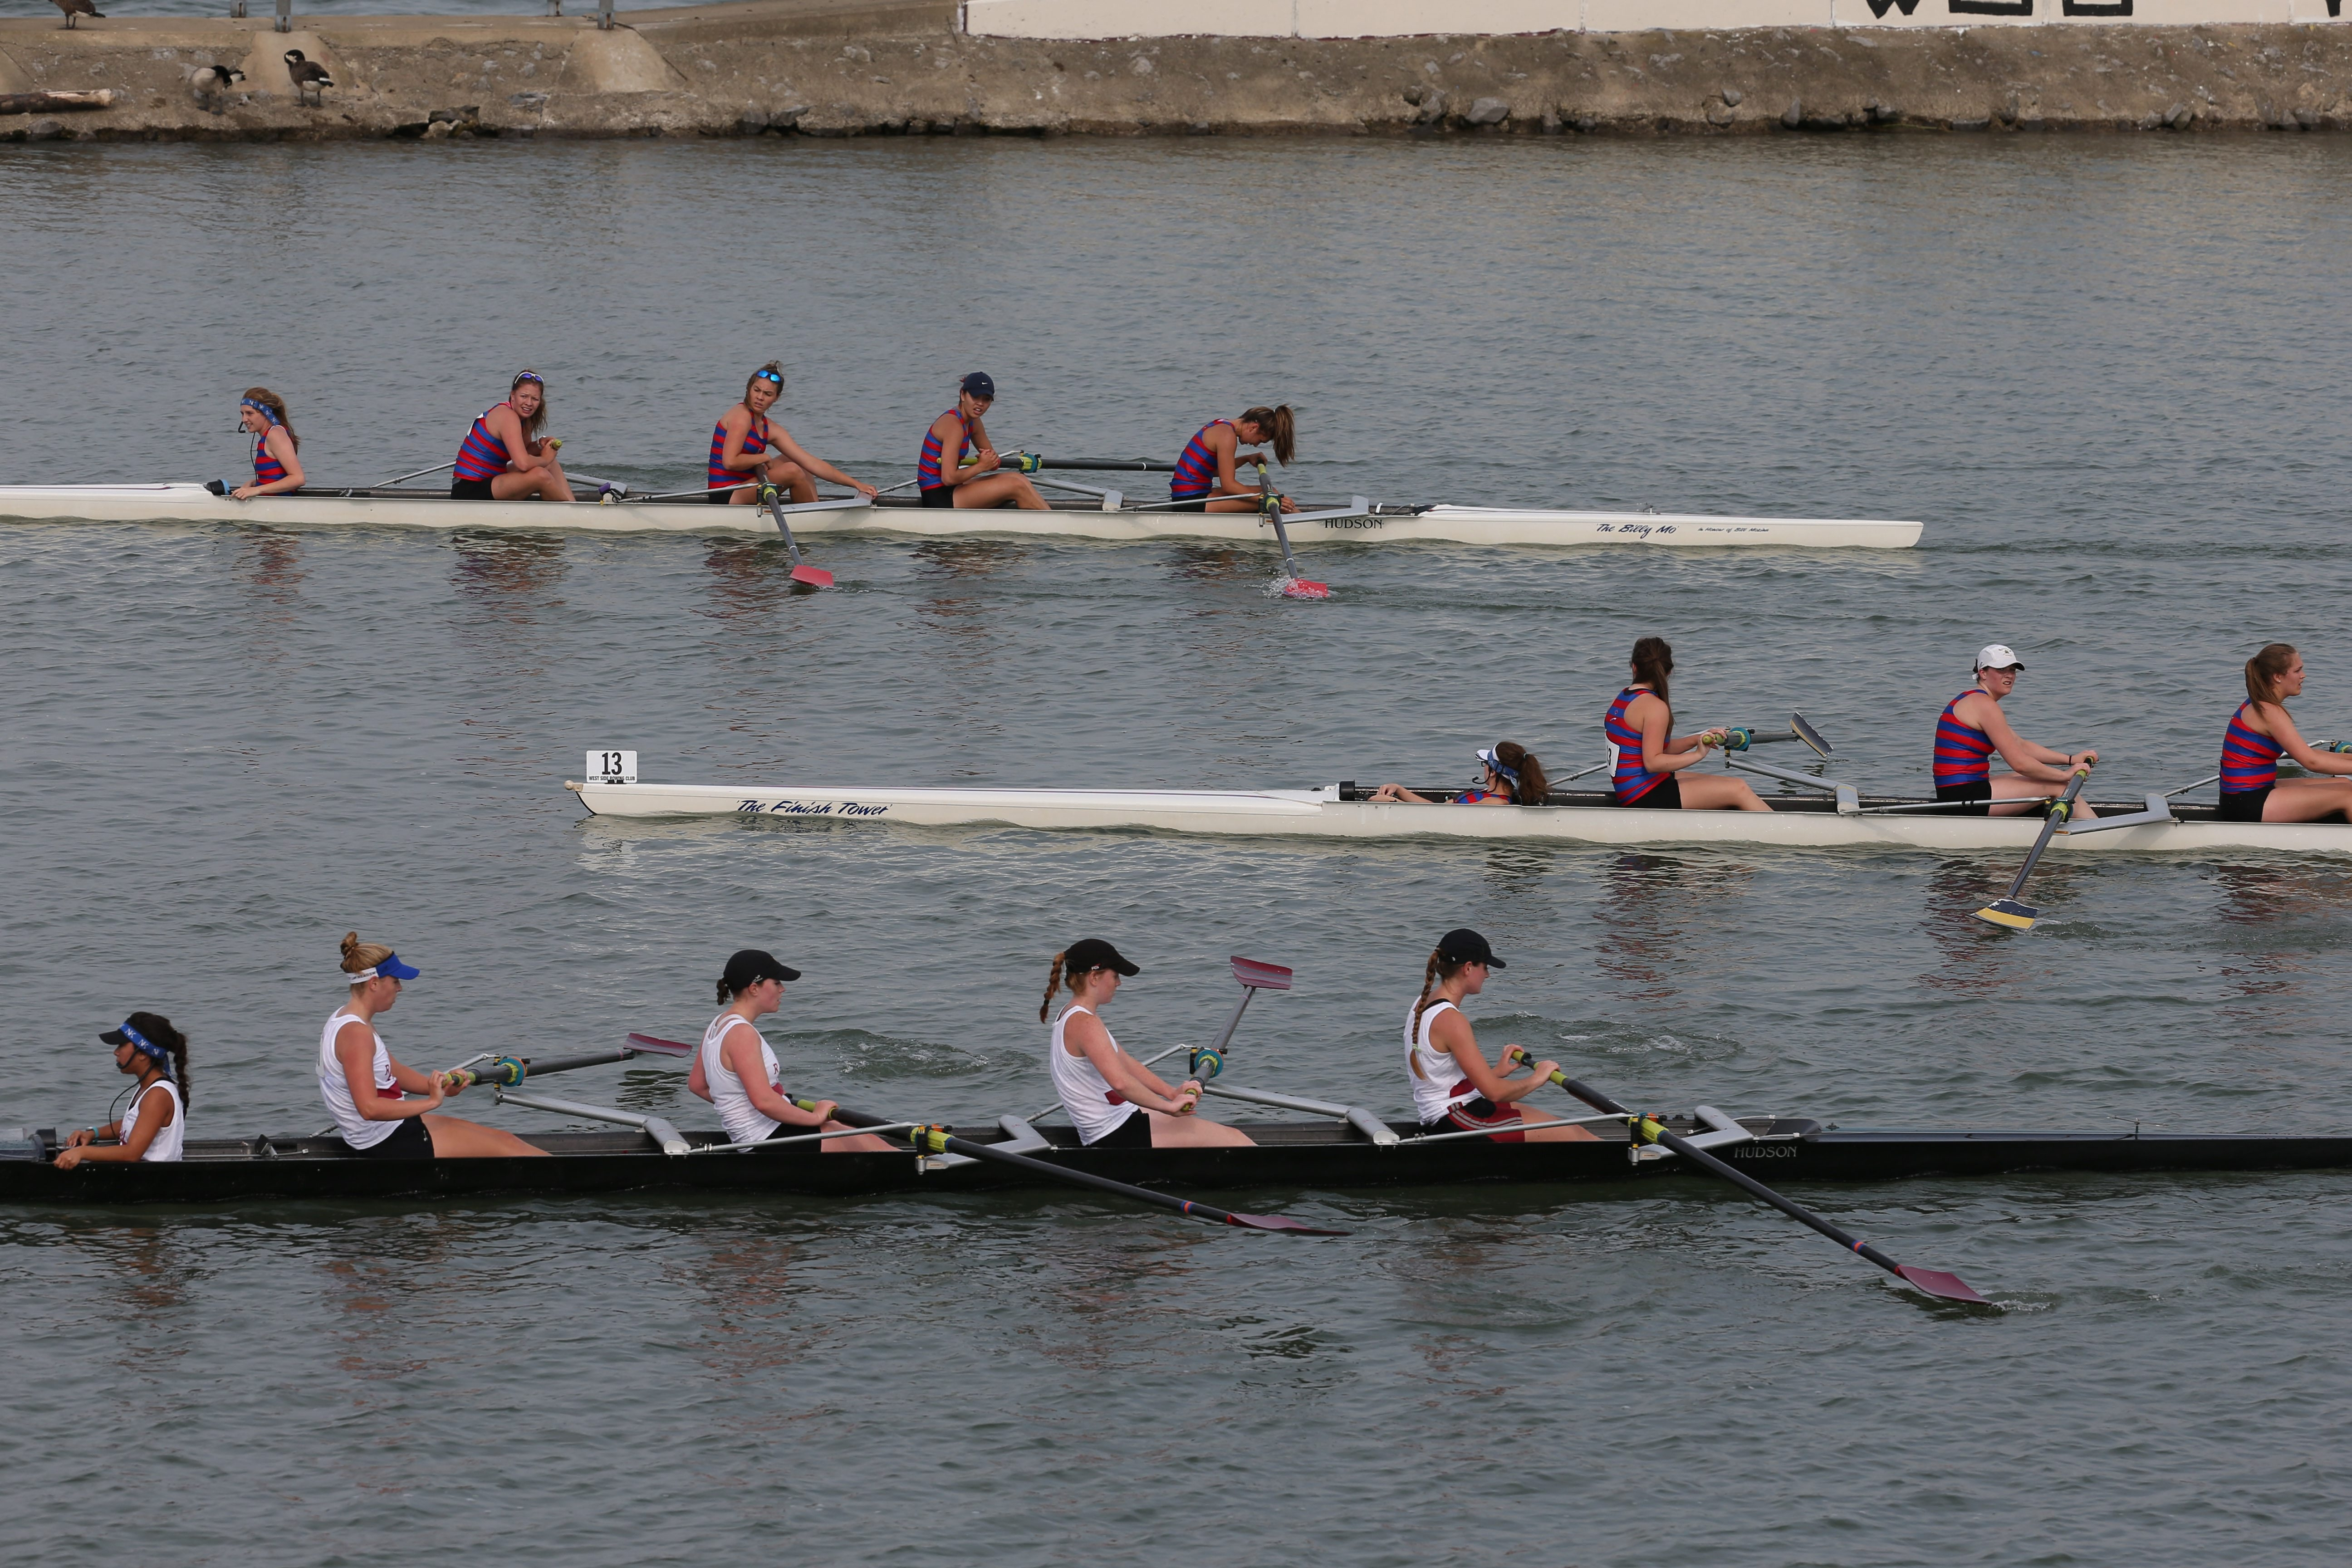 The West Side Rowing Club competes Sunday in four-oared boats during its 102nd annual Invitational Regatta.